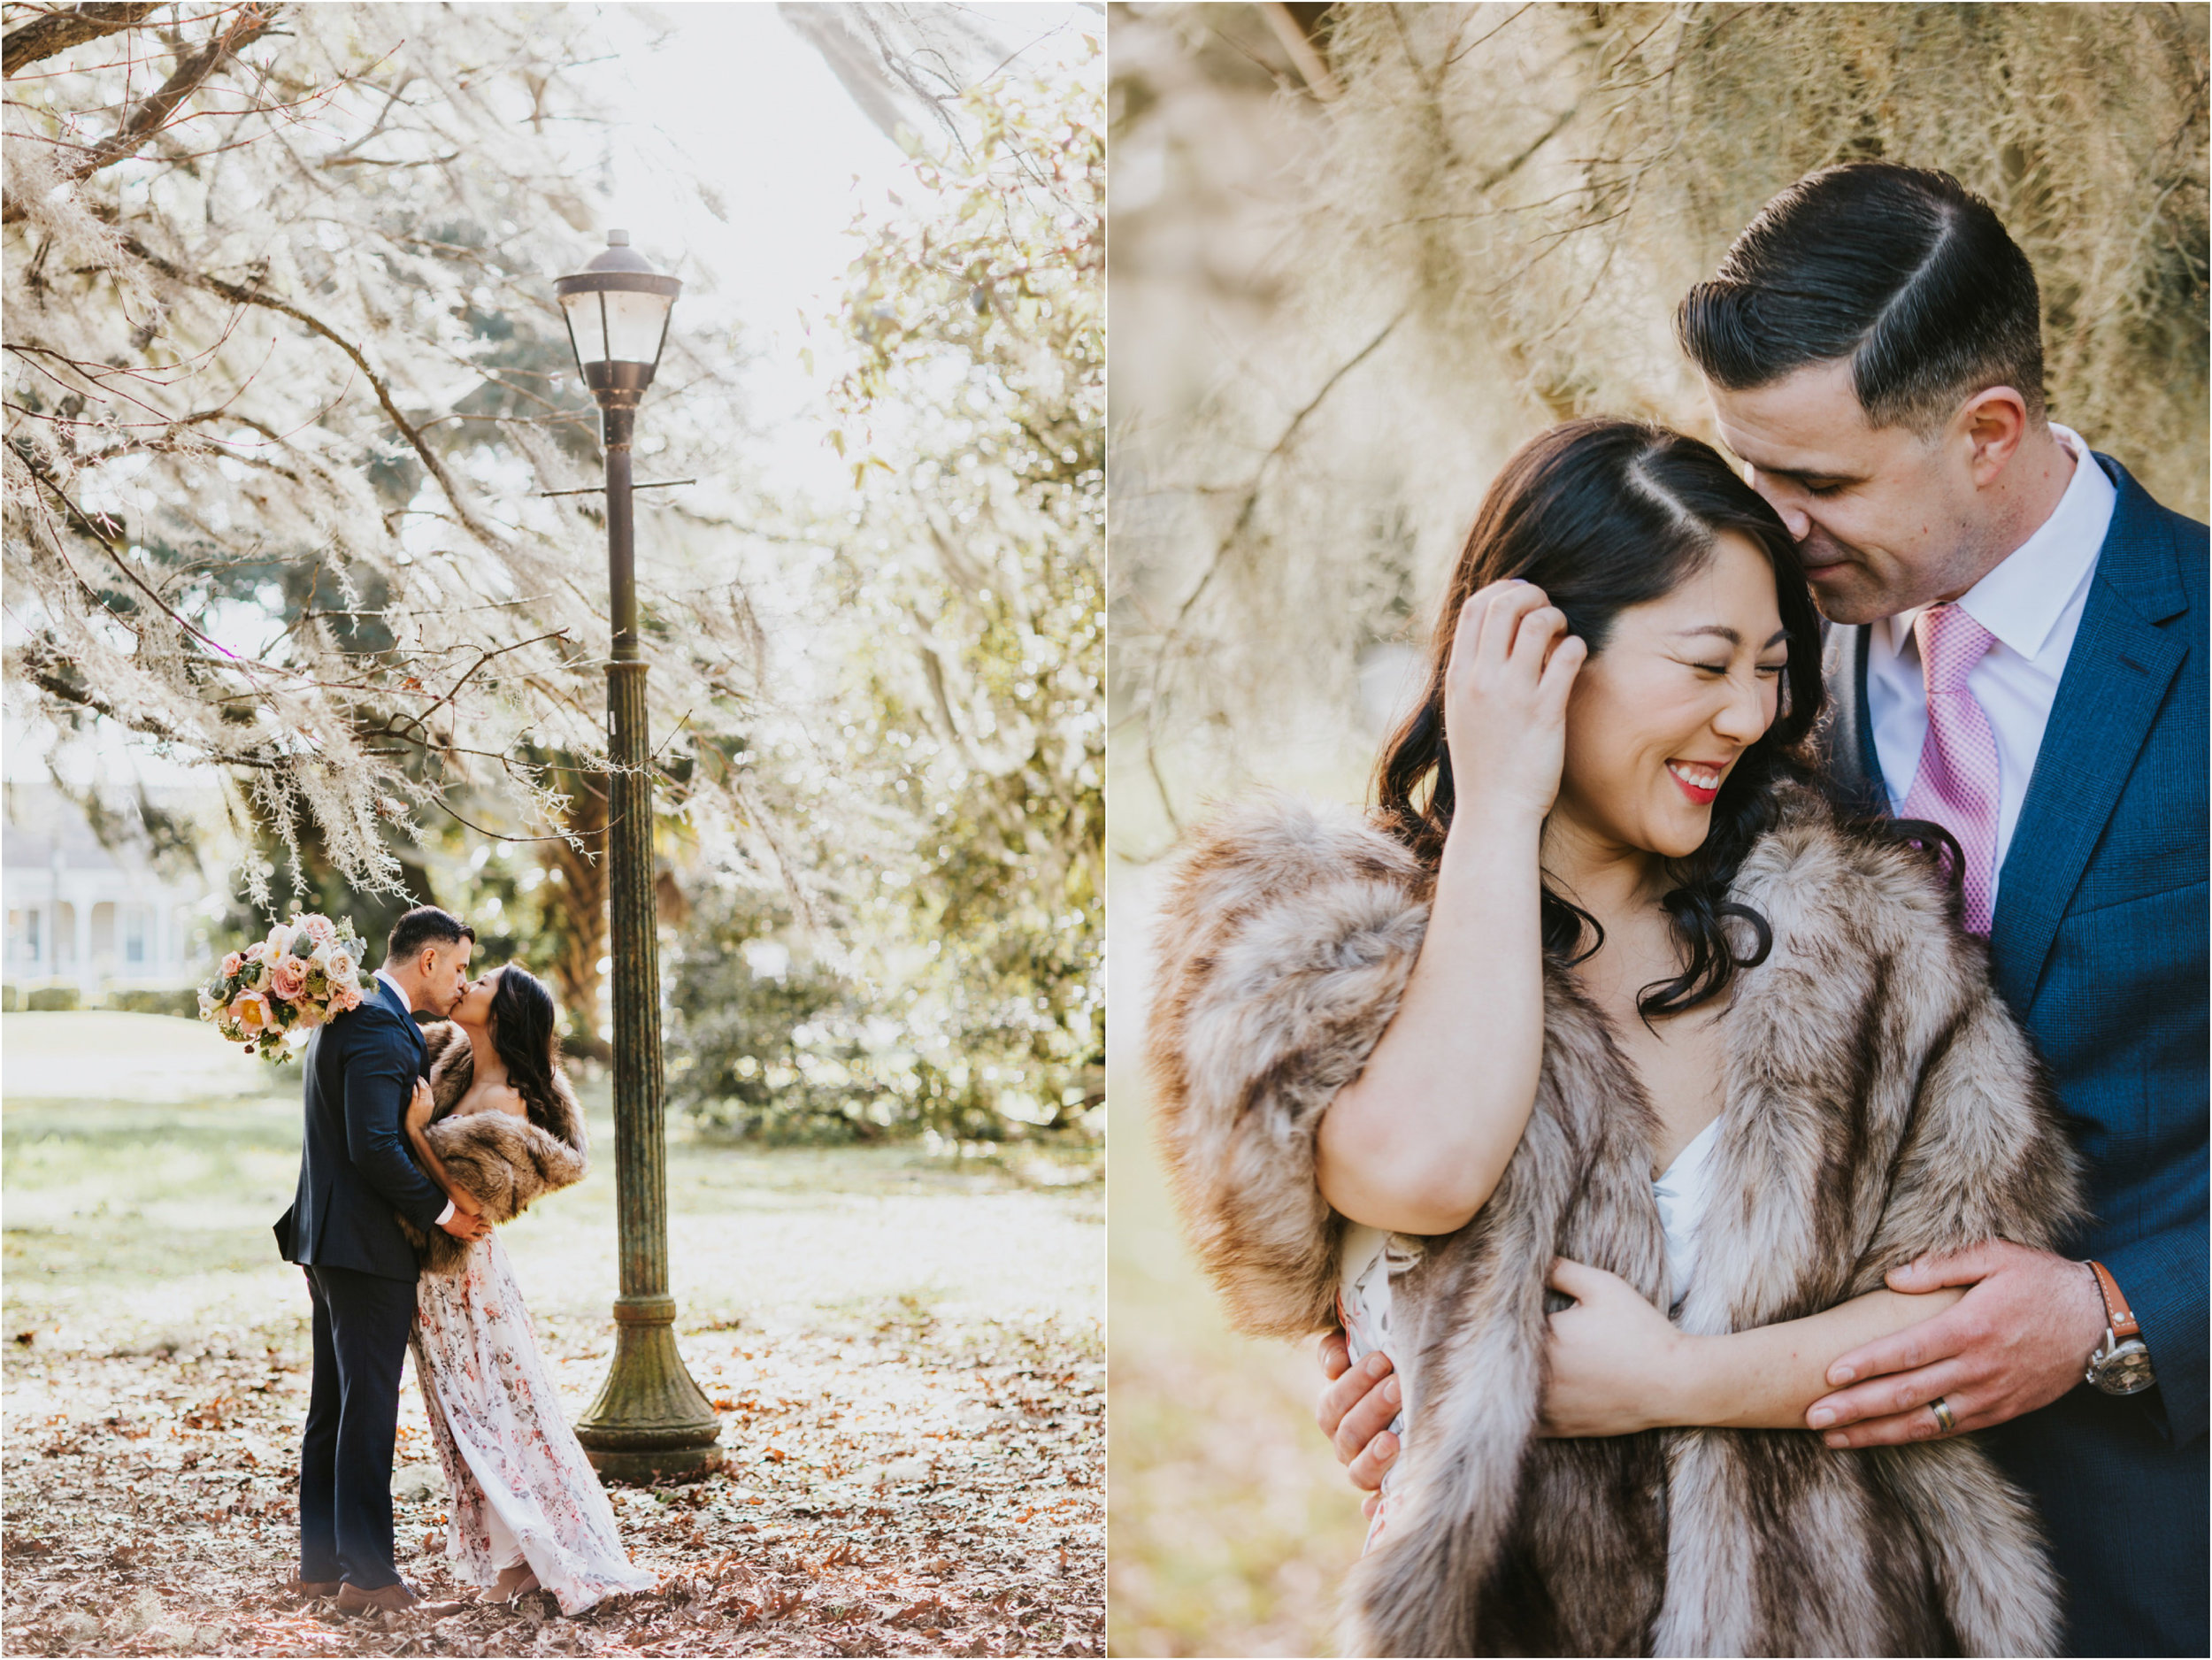 City Park Elopement New Orleans Wedding Photographer Ashley Biltz Photography21.jpg